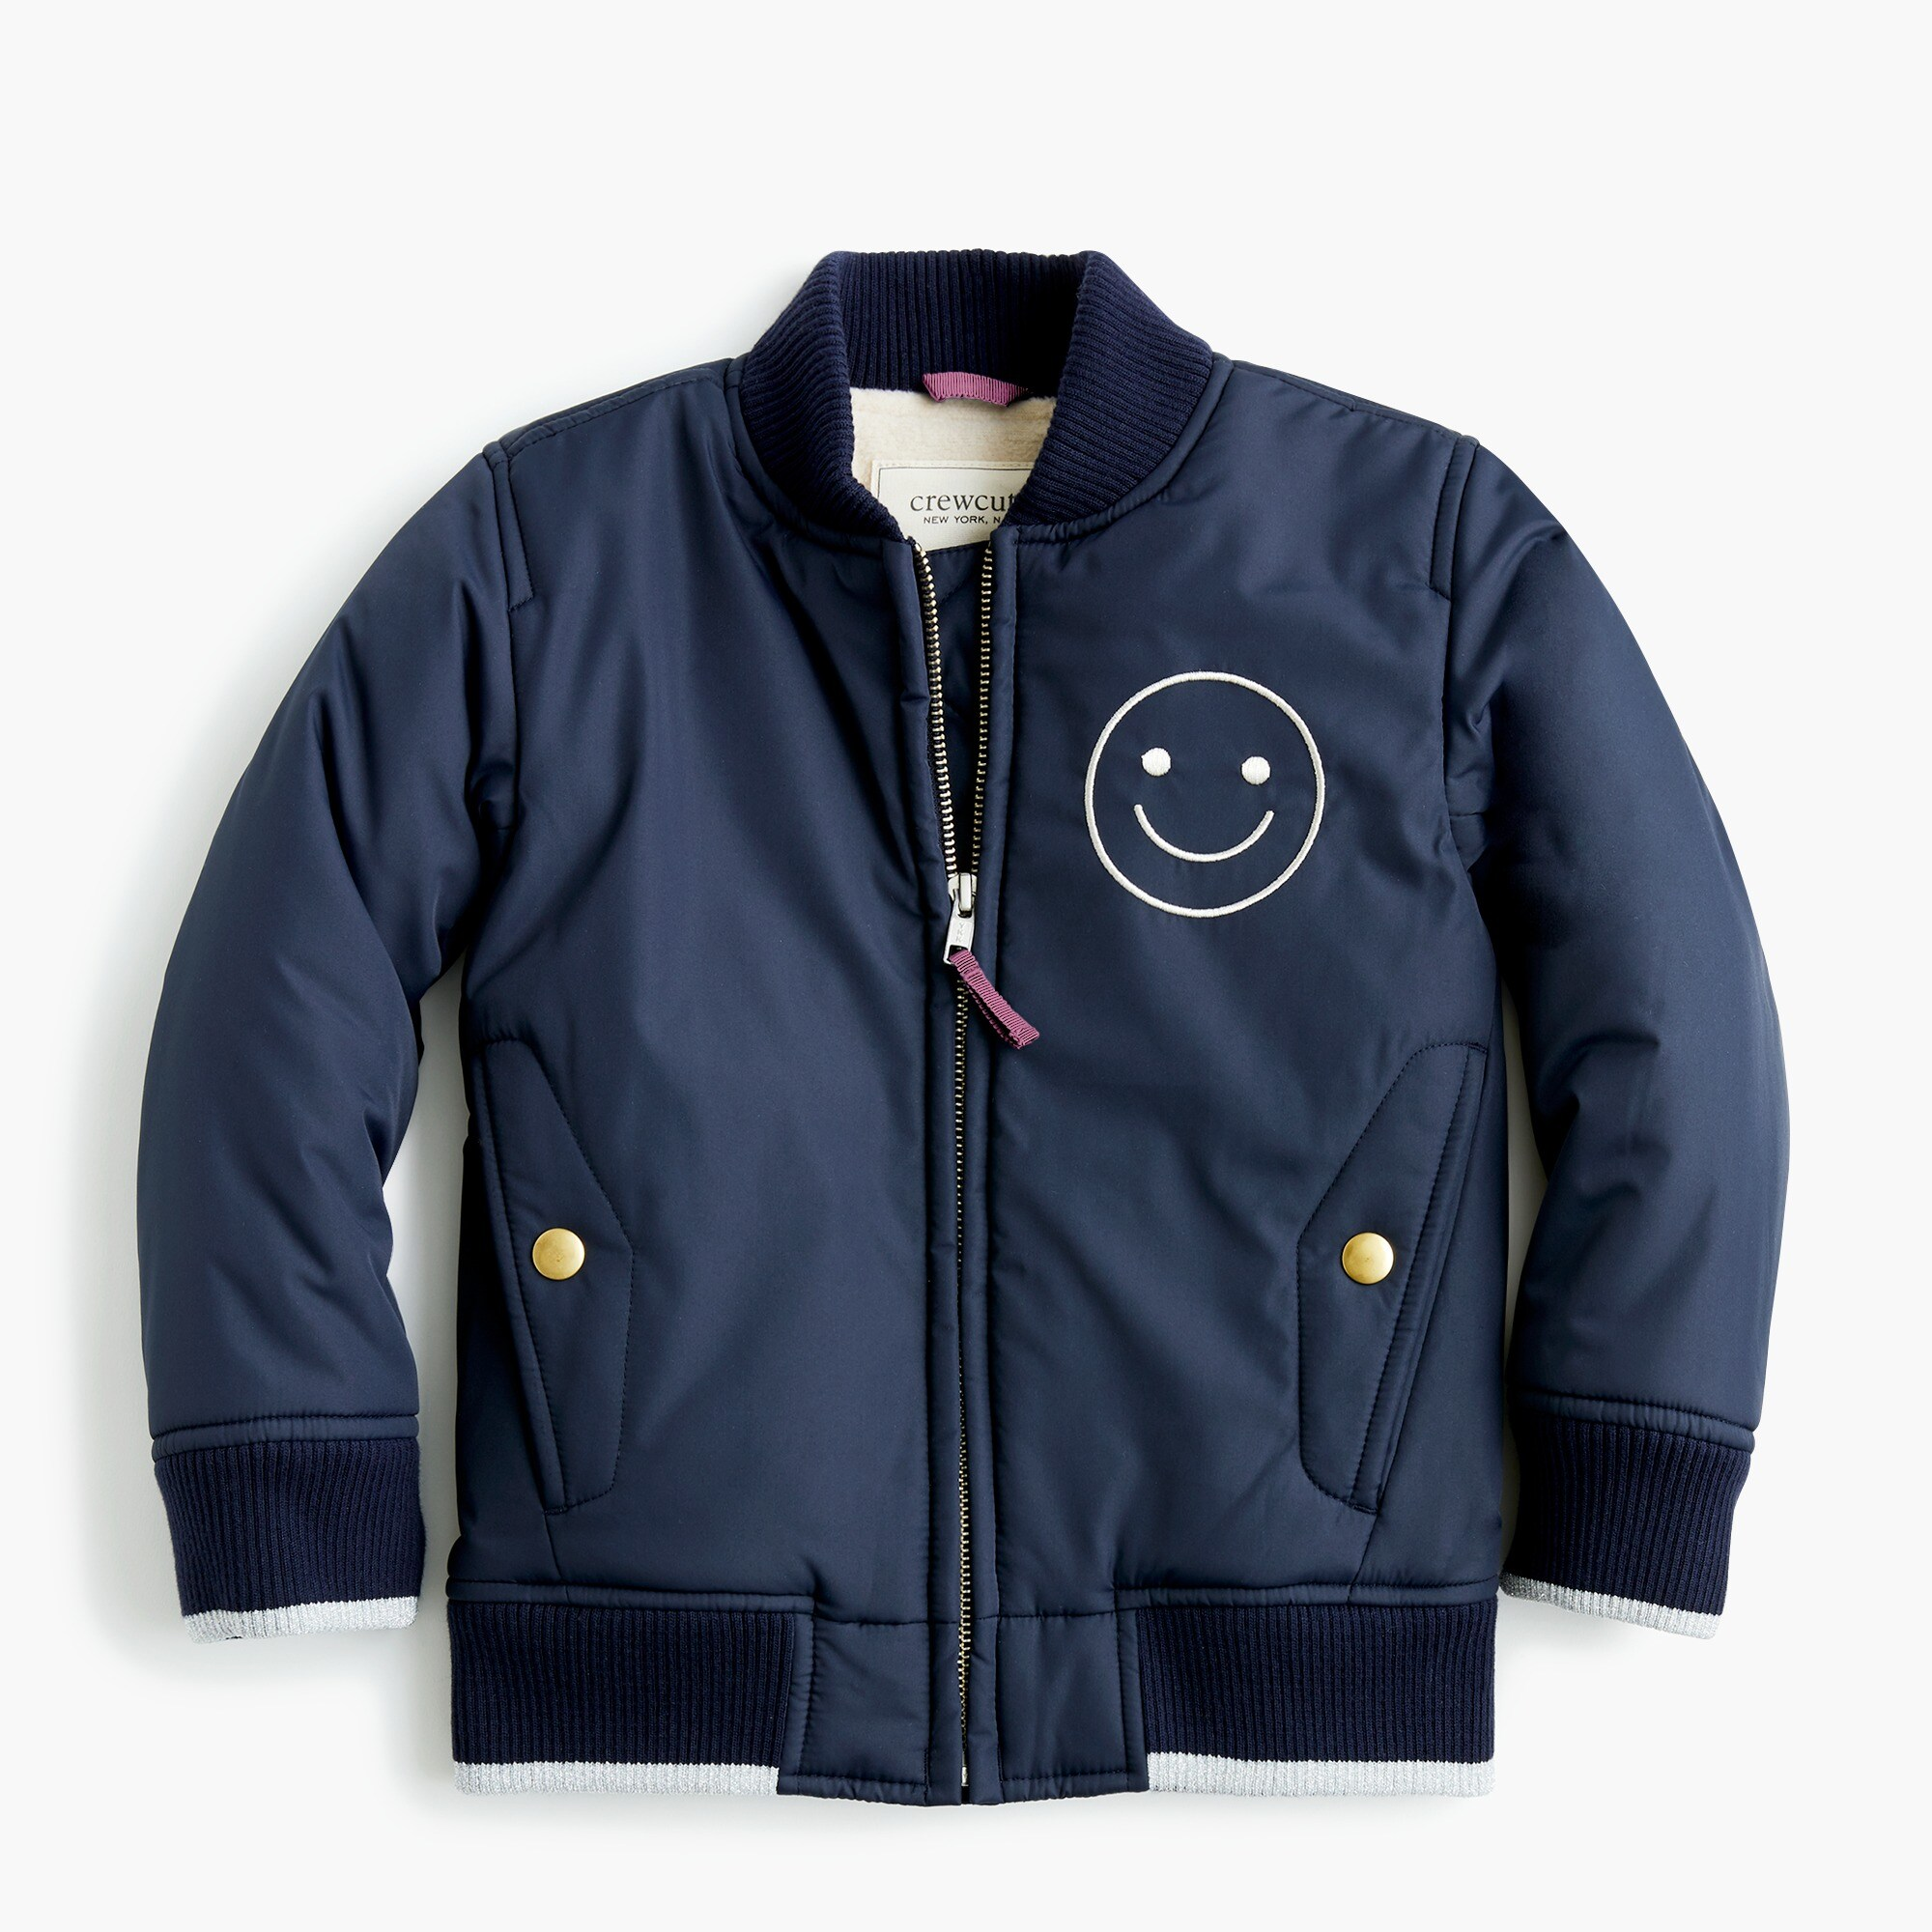 Kids' bomber jacket